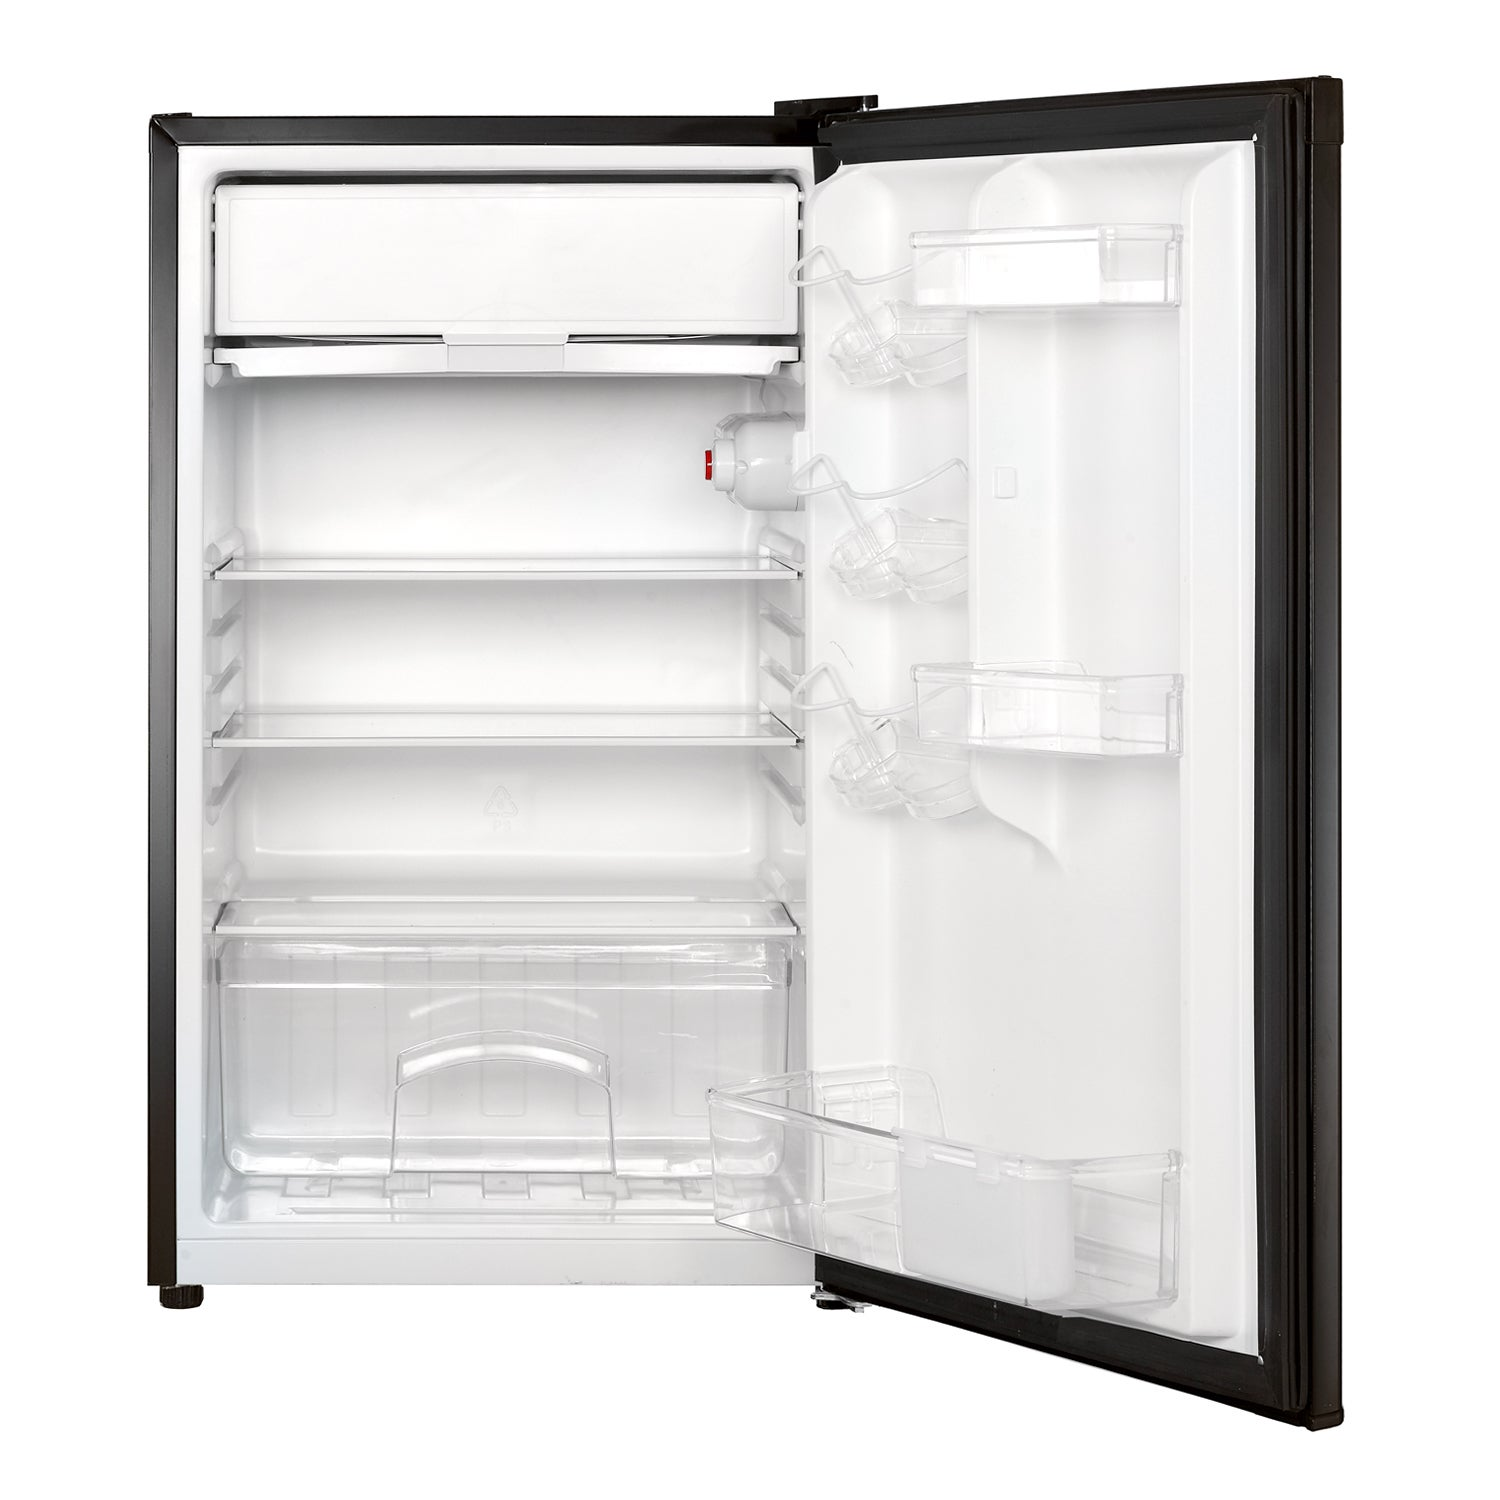 Shop Magic Chef 44 Cubic Foot Compact Refrigerator Free Shipping